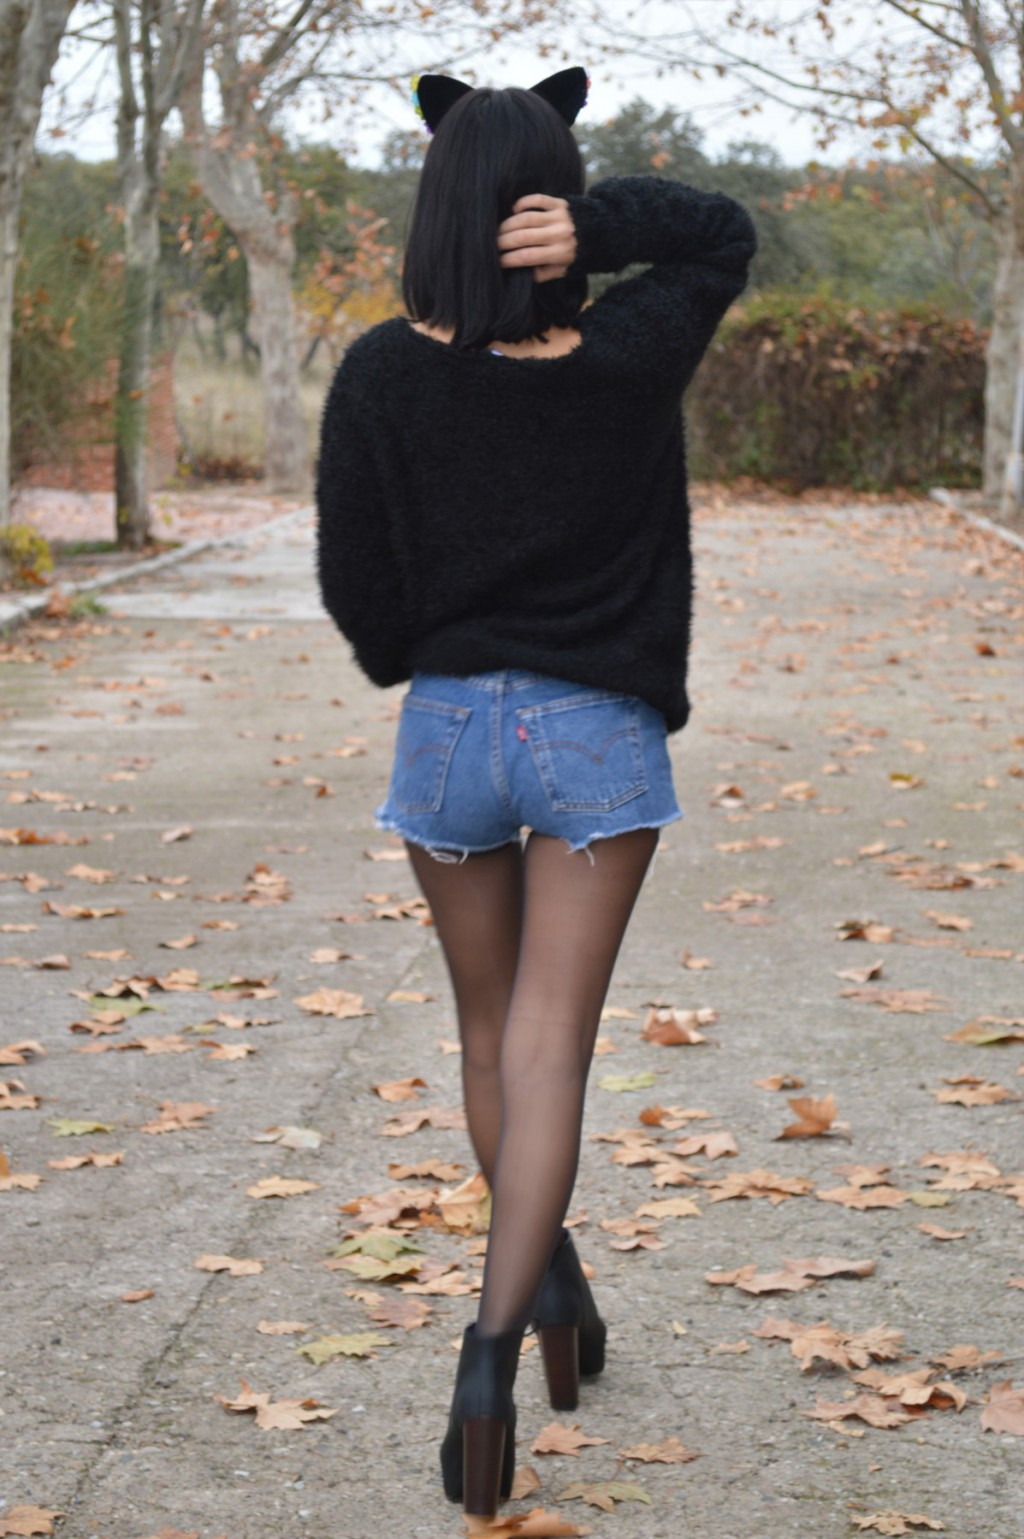 Jersey: H&M (New) Shorts: Levi´s vintage by The the Botas / boots: H&M (New) Diadema / diadem: H&M Medias / tights: Calzedonia